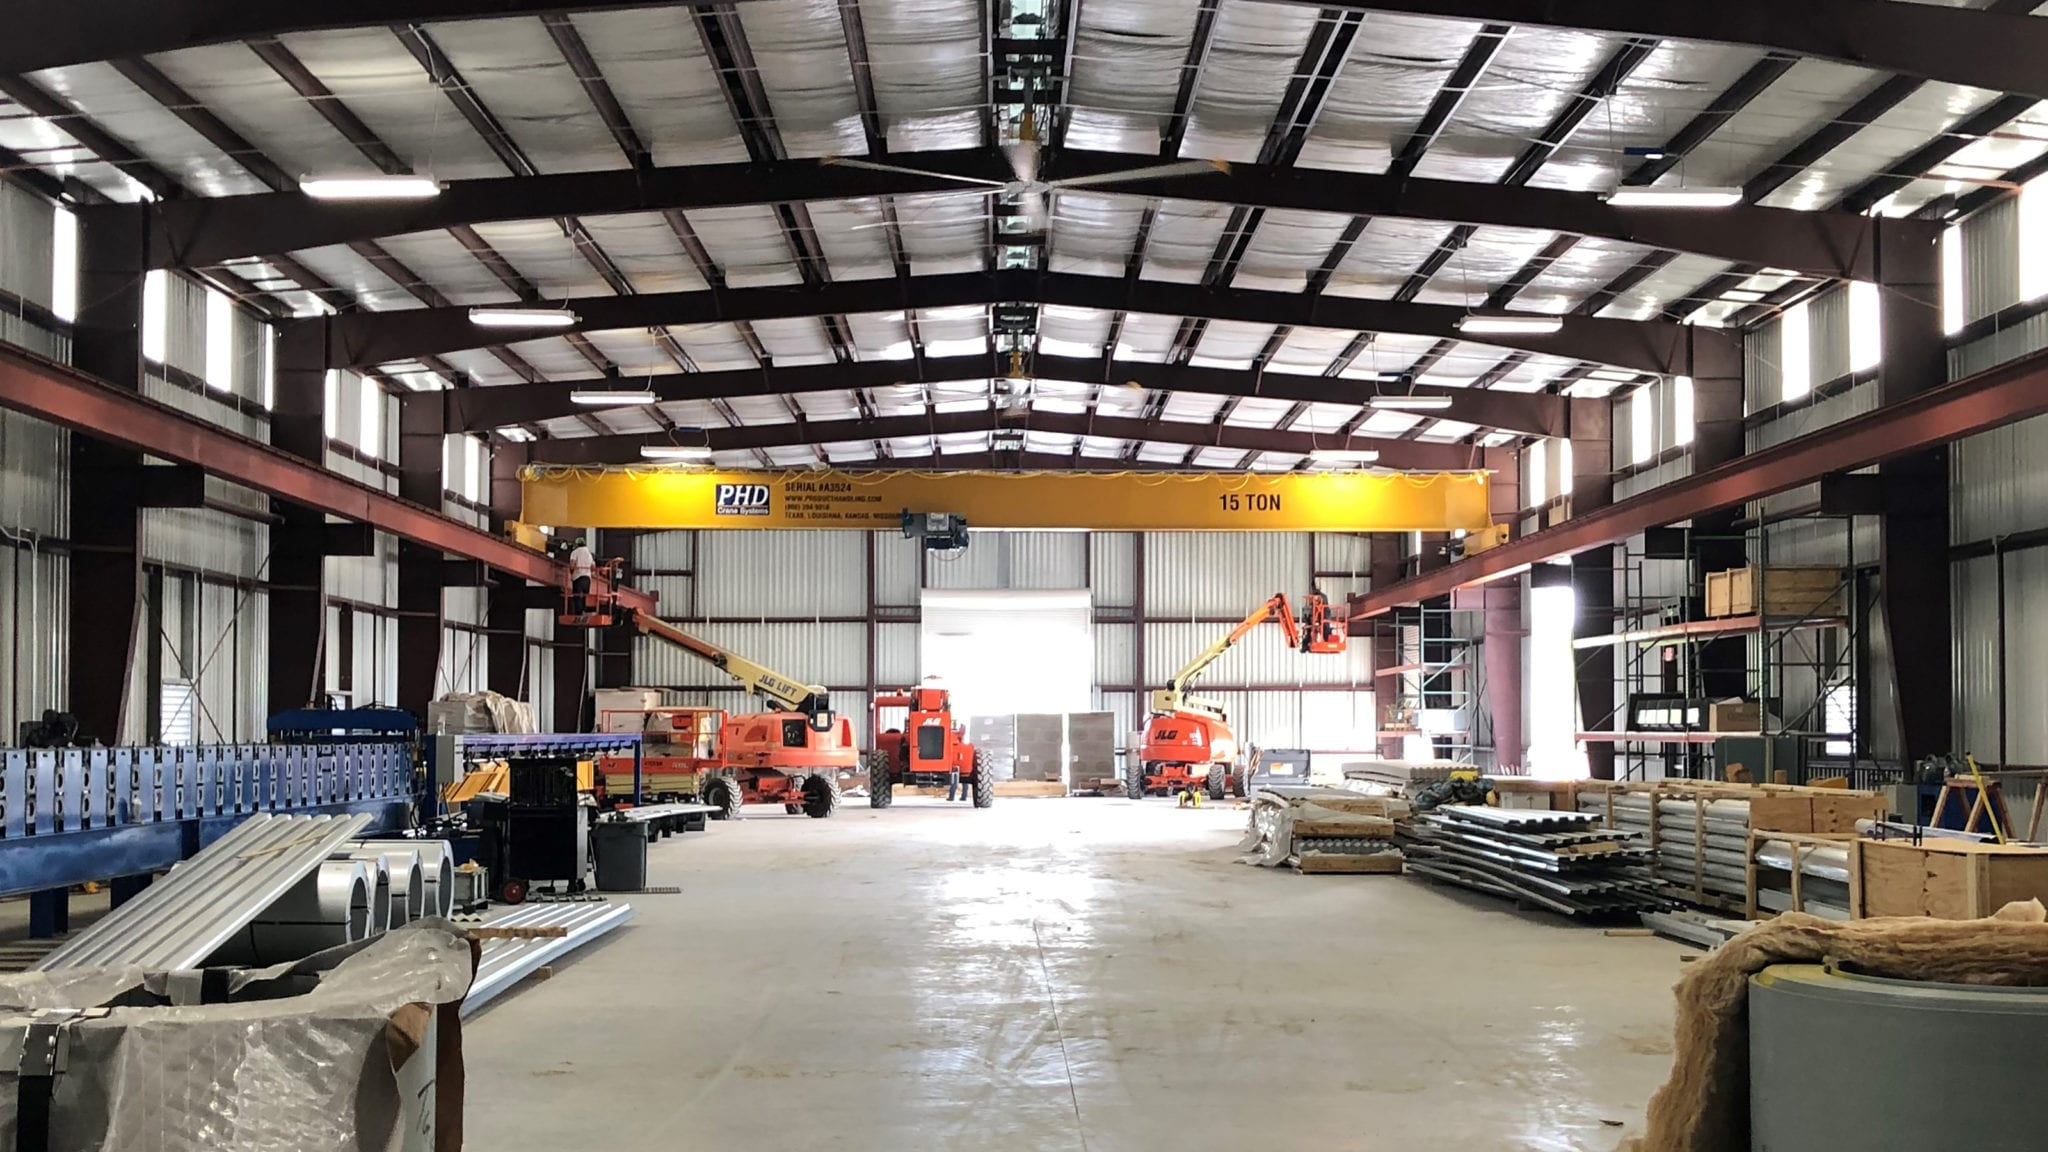 The 15-ton overhead crane improves our production capabilities and speed.